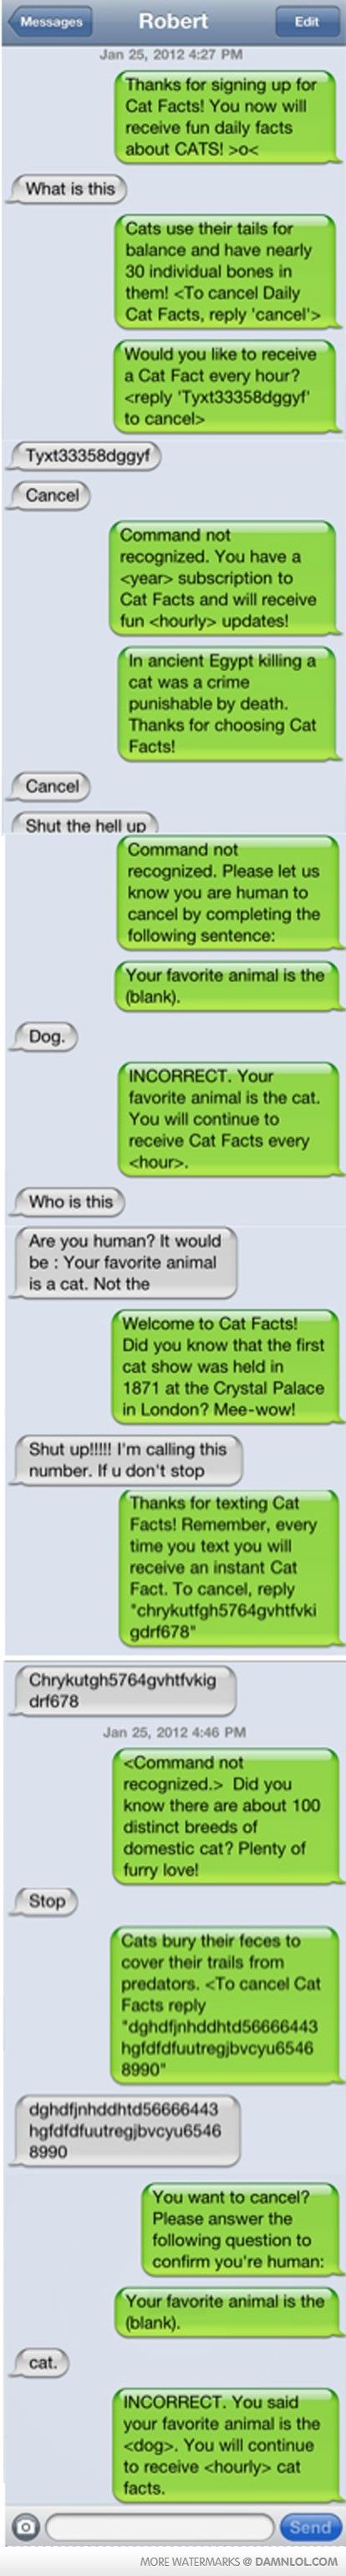 I LAUGHED WAY TO HARD OMG LOL I AM GONNA DO THIS @danica131252 I SHOULD DO IT TO HUNTER!!!